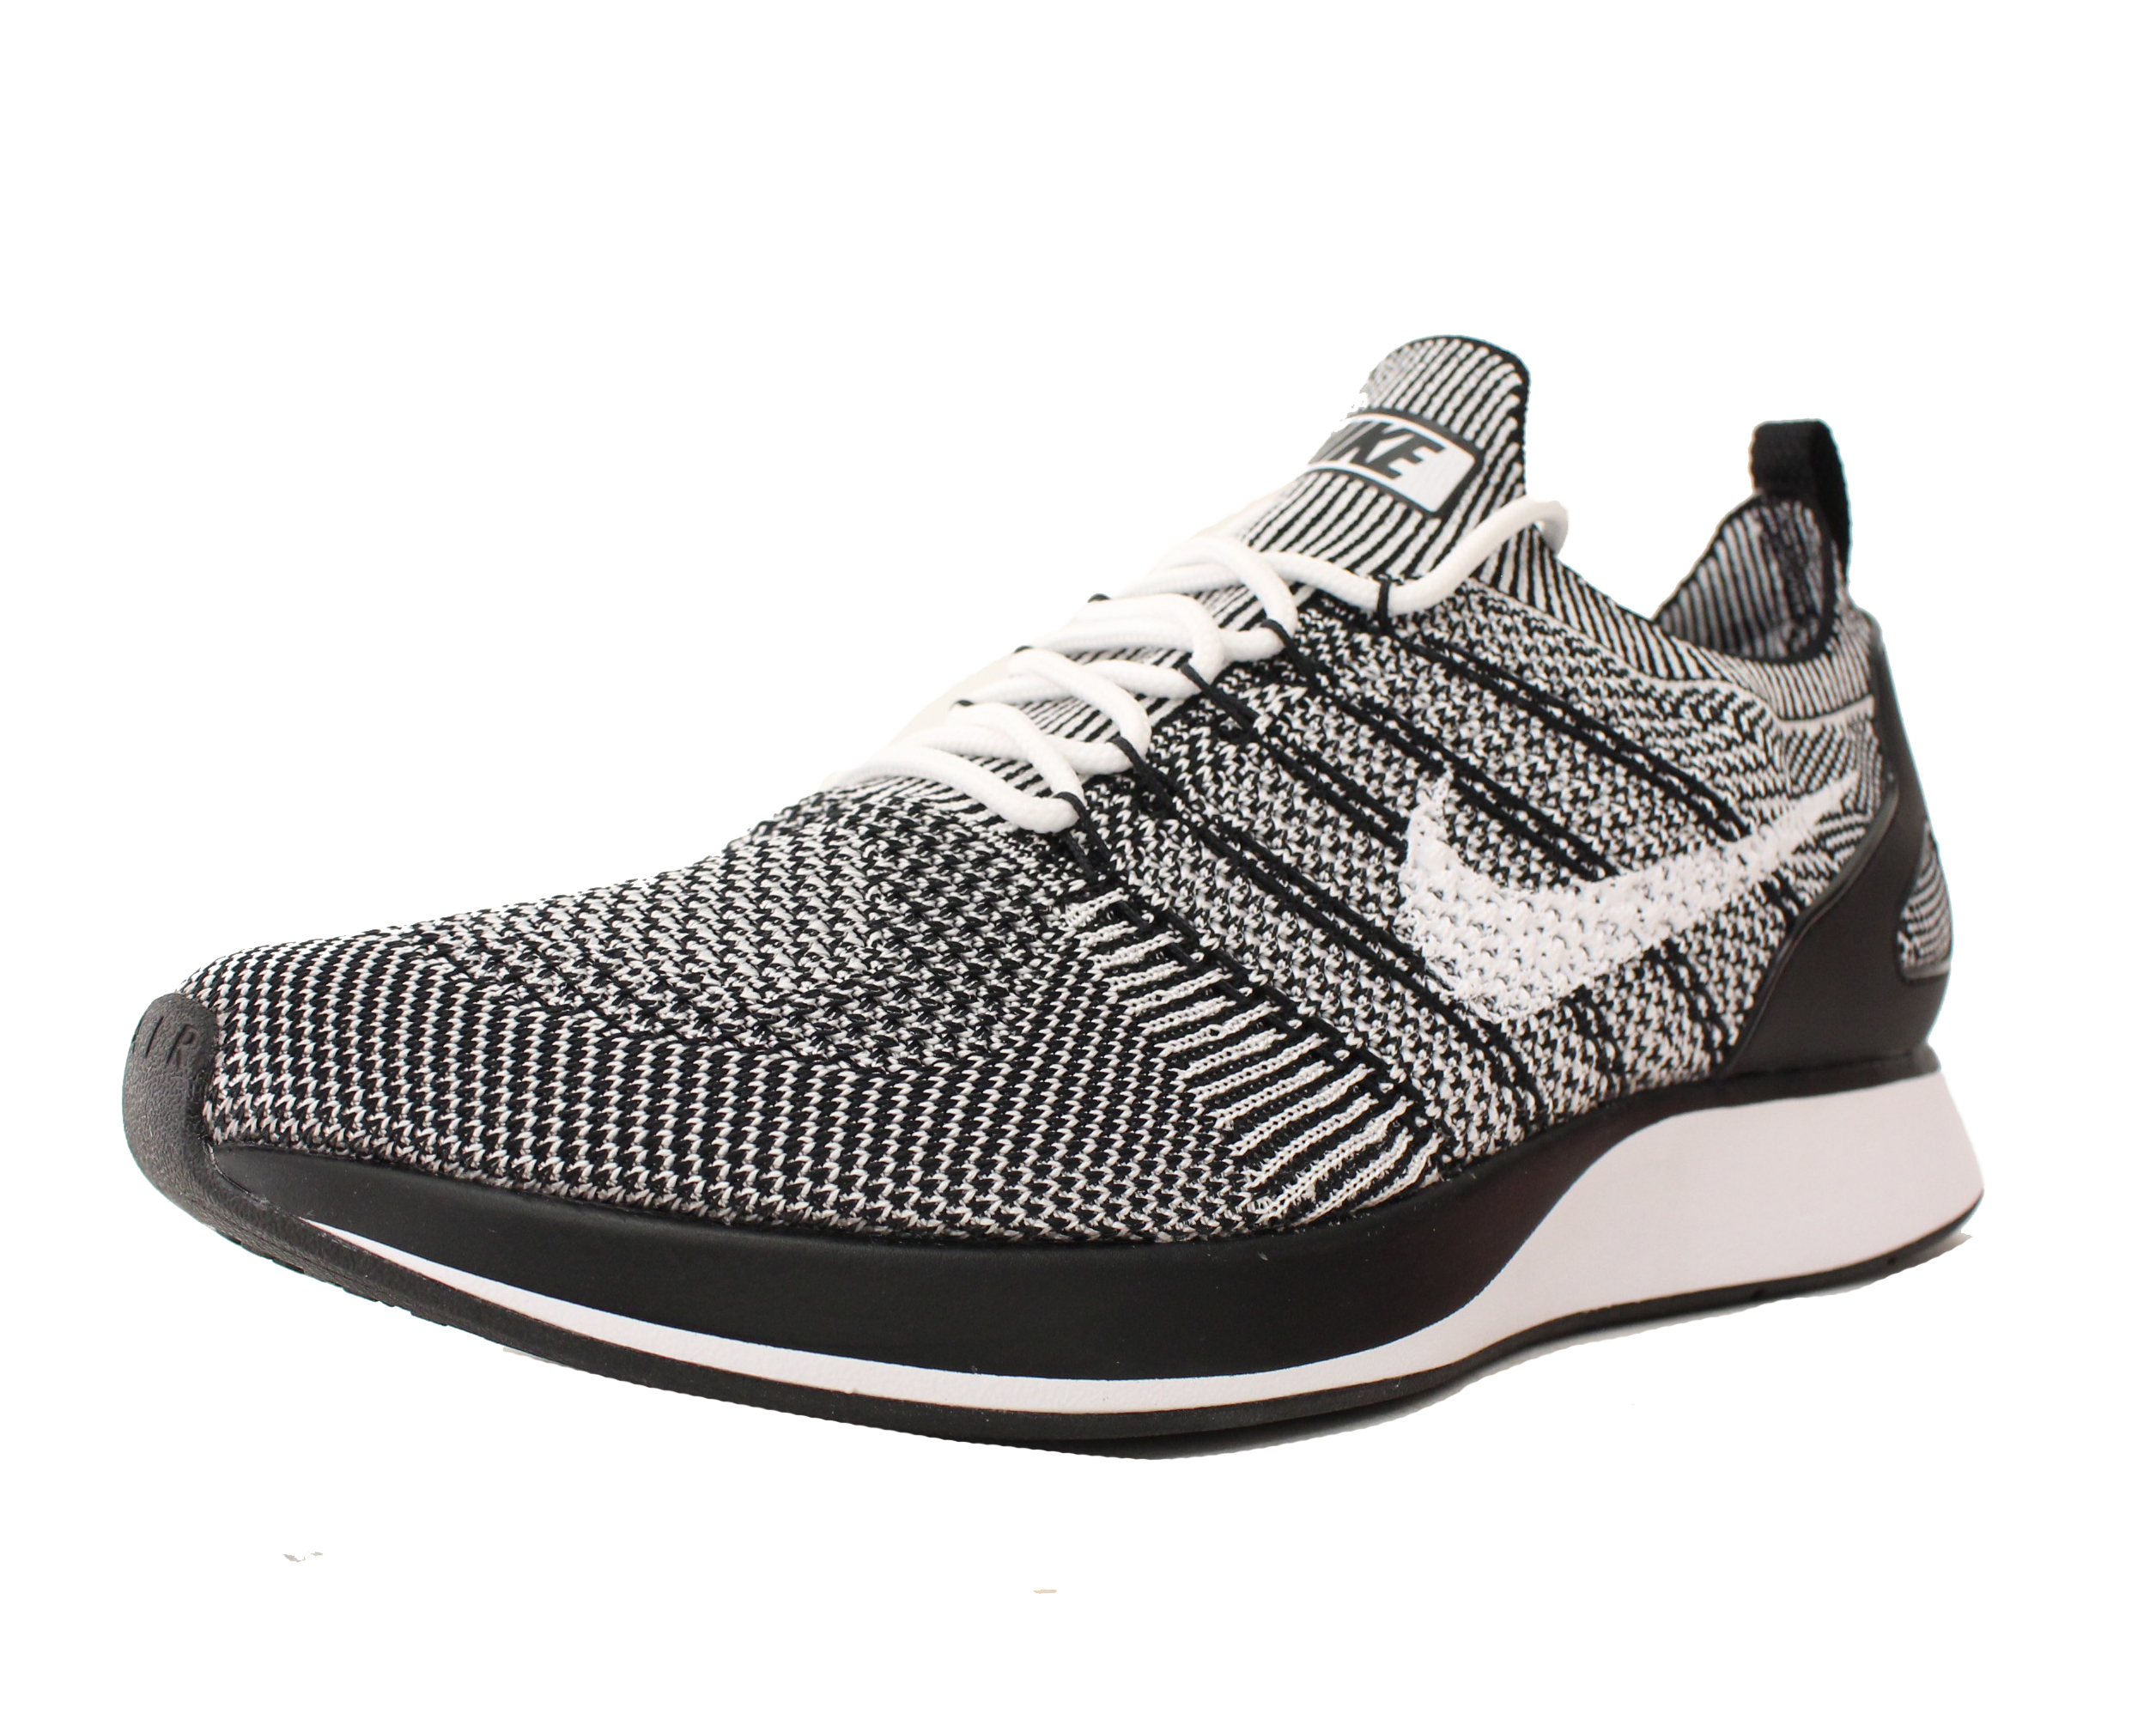 timeless design 47d45 e97c4 ... best price nike air zoom mariah flyknit racer sz 11 white black oreo  trainer 918264 102